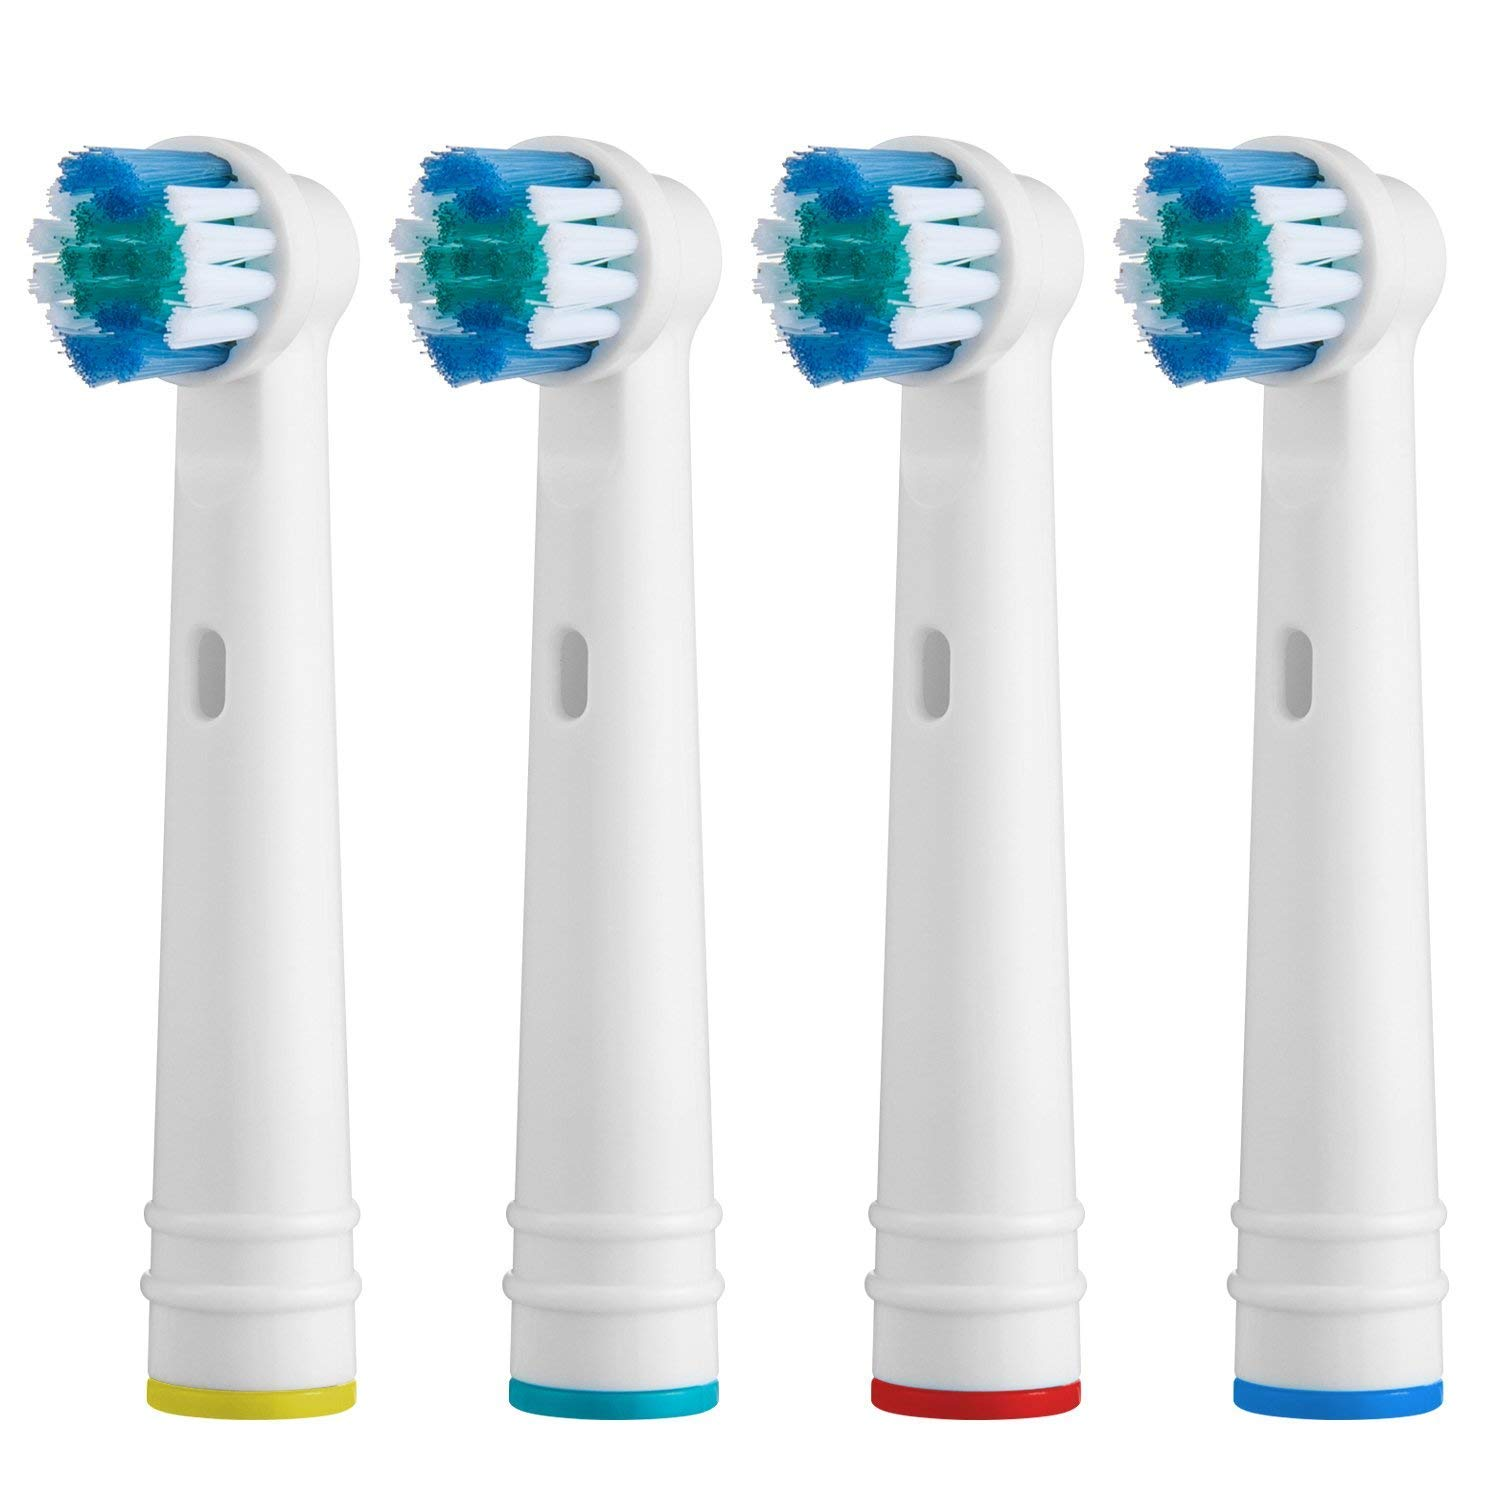 Replacement Brush Heads for Oral B Compatible Electric Toothbrush Pro 1000 Pro 3000 Pro 5000 Pro 7000 Vitality Precision Clean - 2x4 Multi Pack of 8